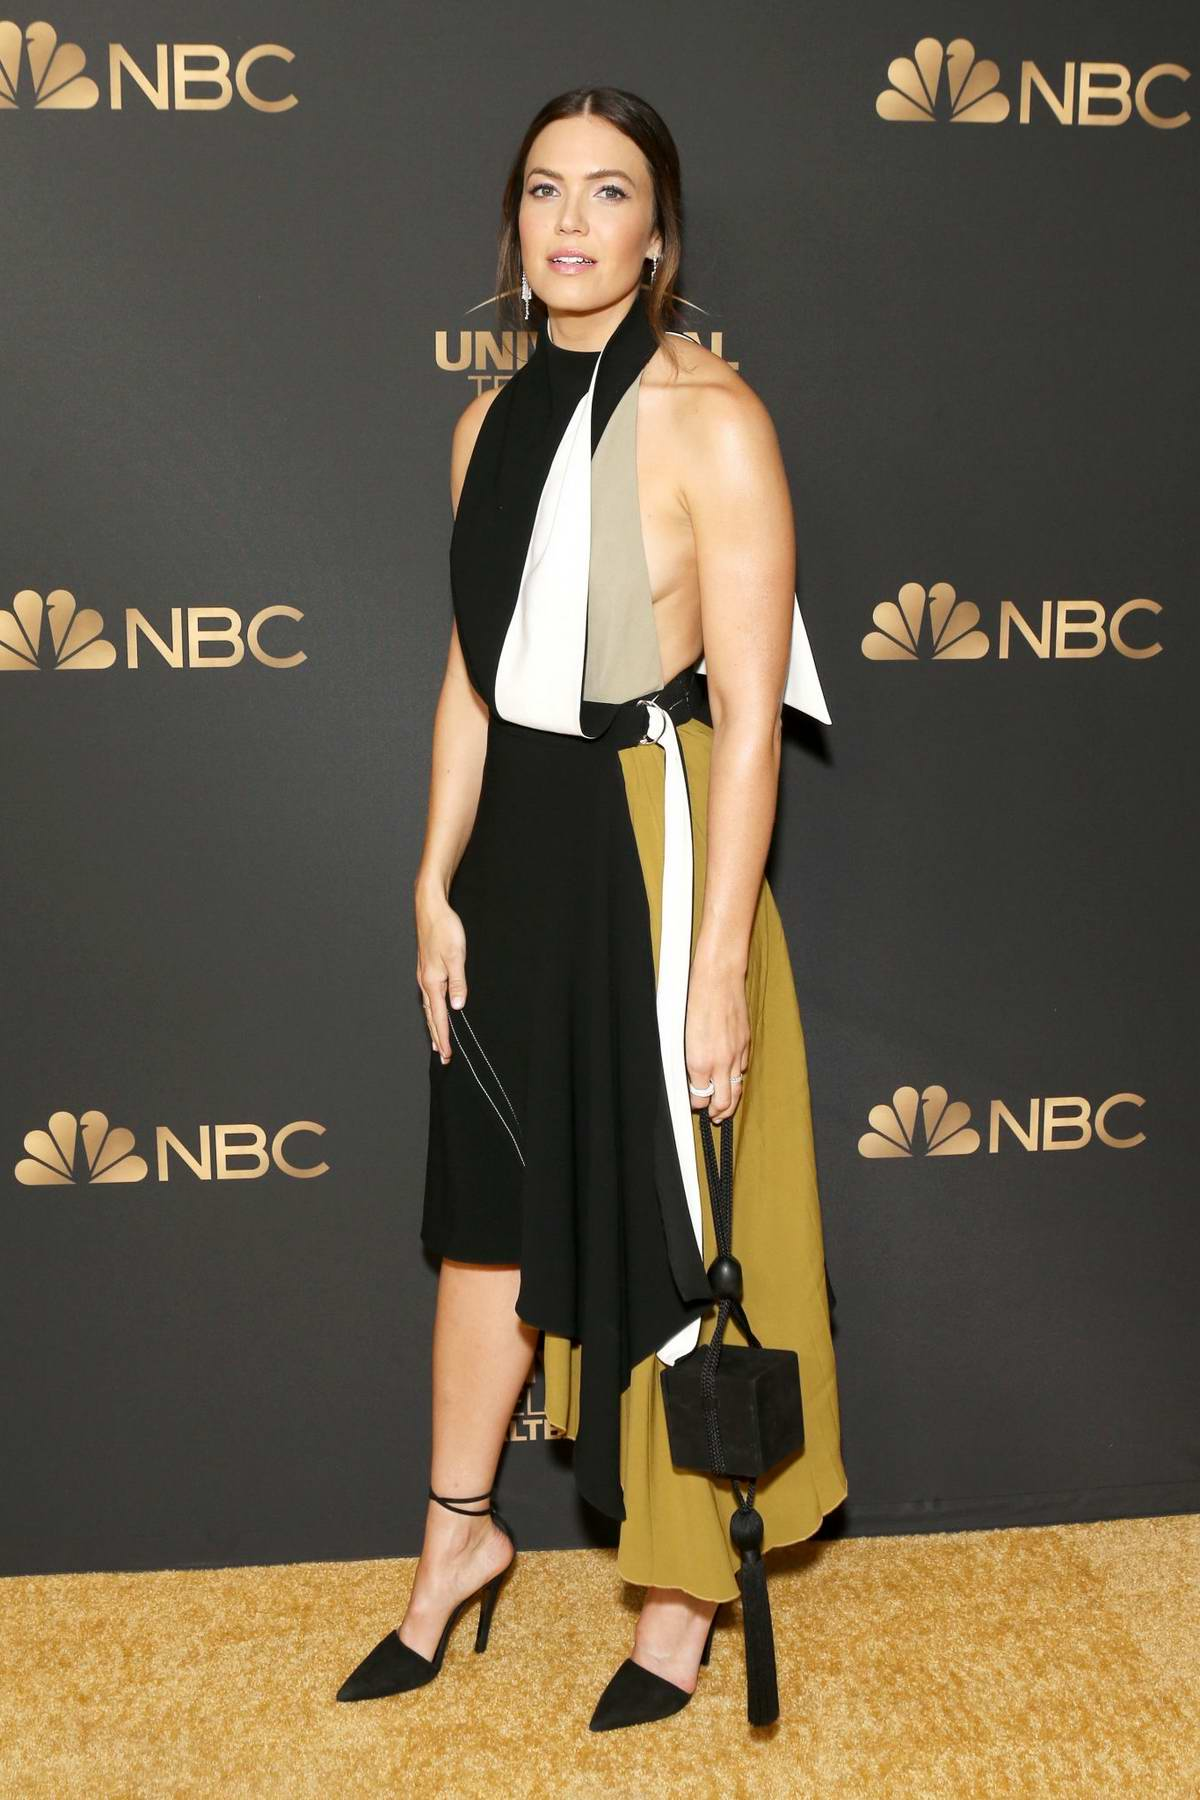 Mandy Moore attends the NBC and Universal EMMY nominee celebration at Tesse Restaurant in West Hollywood, Los Angeles